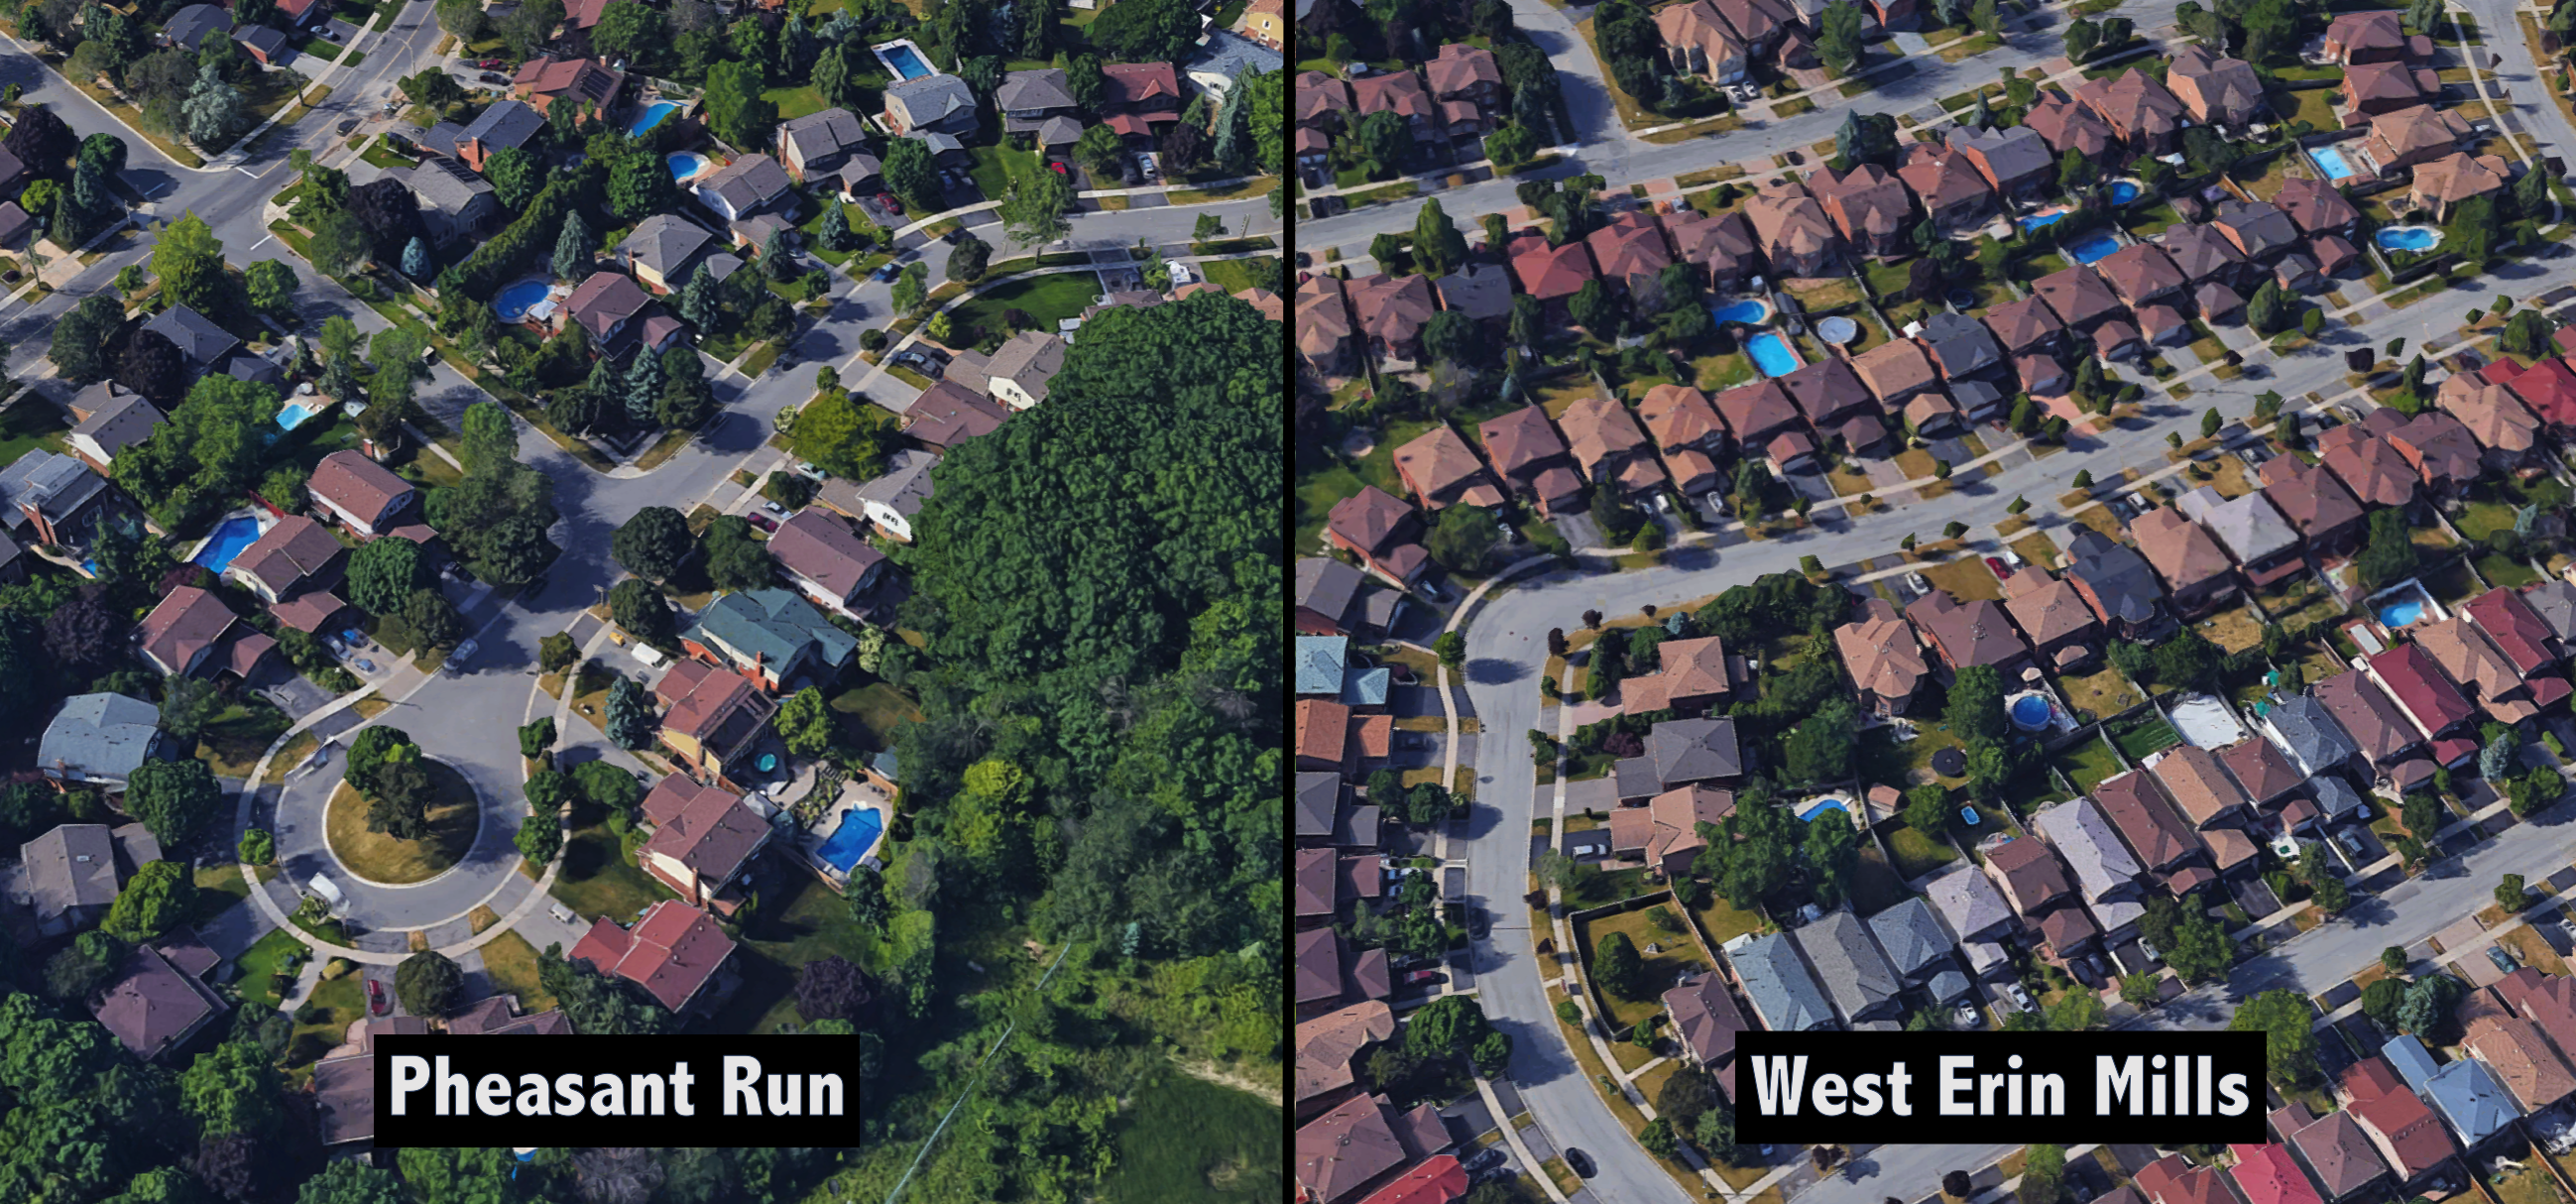 Comparing land sixes for homes in pheasant run versus west erin mills